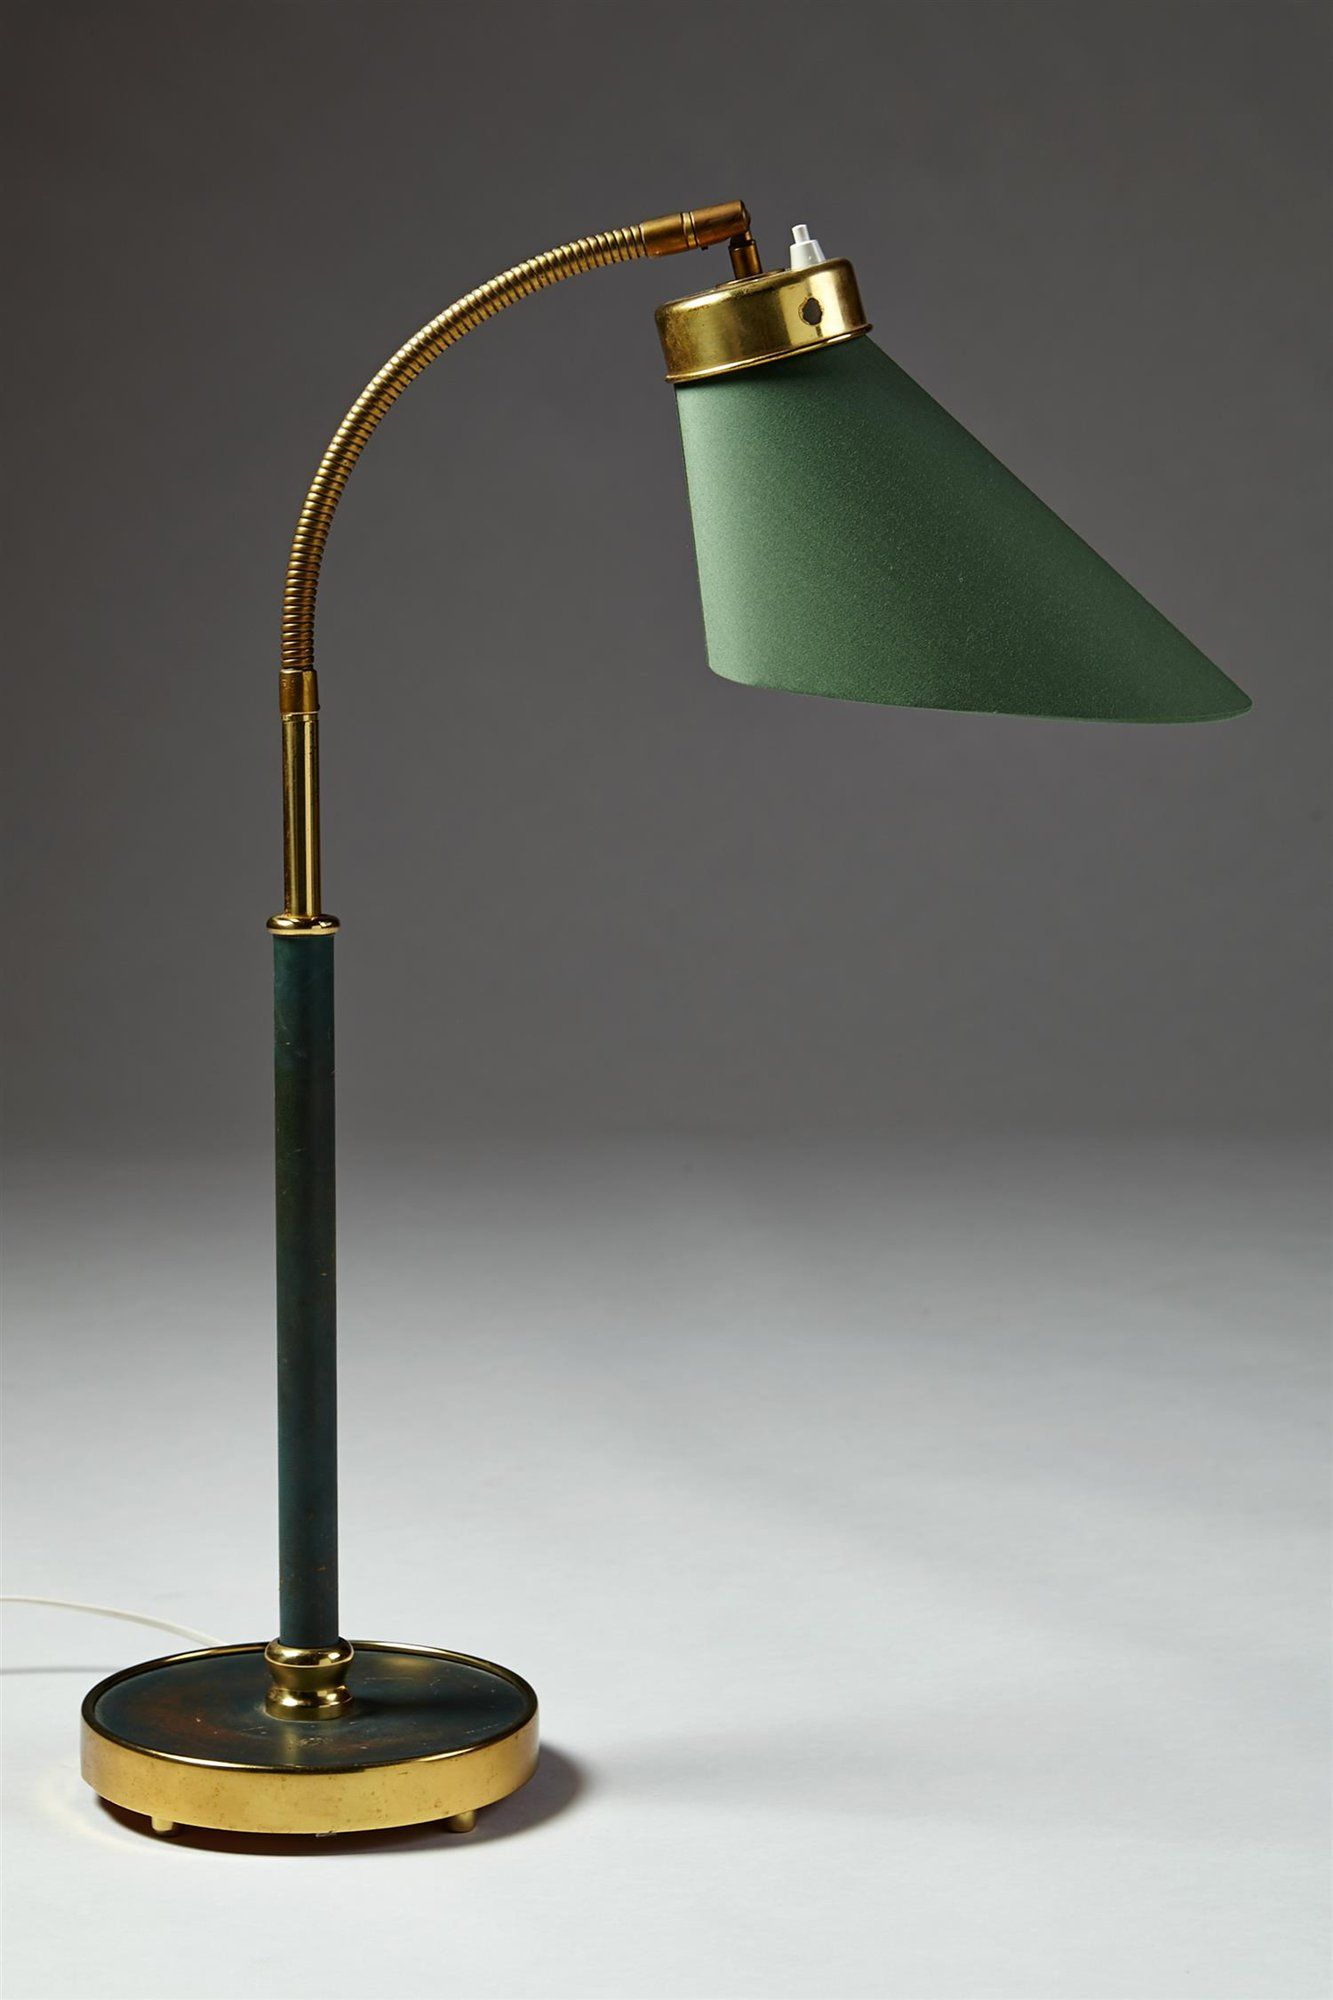 Table Lamp Designed By Josef Frank For Svenskt Tenn Sweden 1940 S Lacquered Brass Polished Brass And Cotton Inredning Lampor Foremal